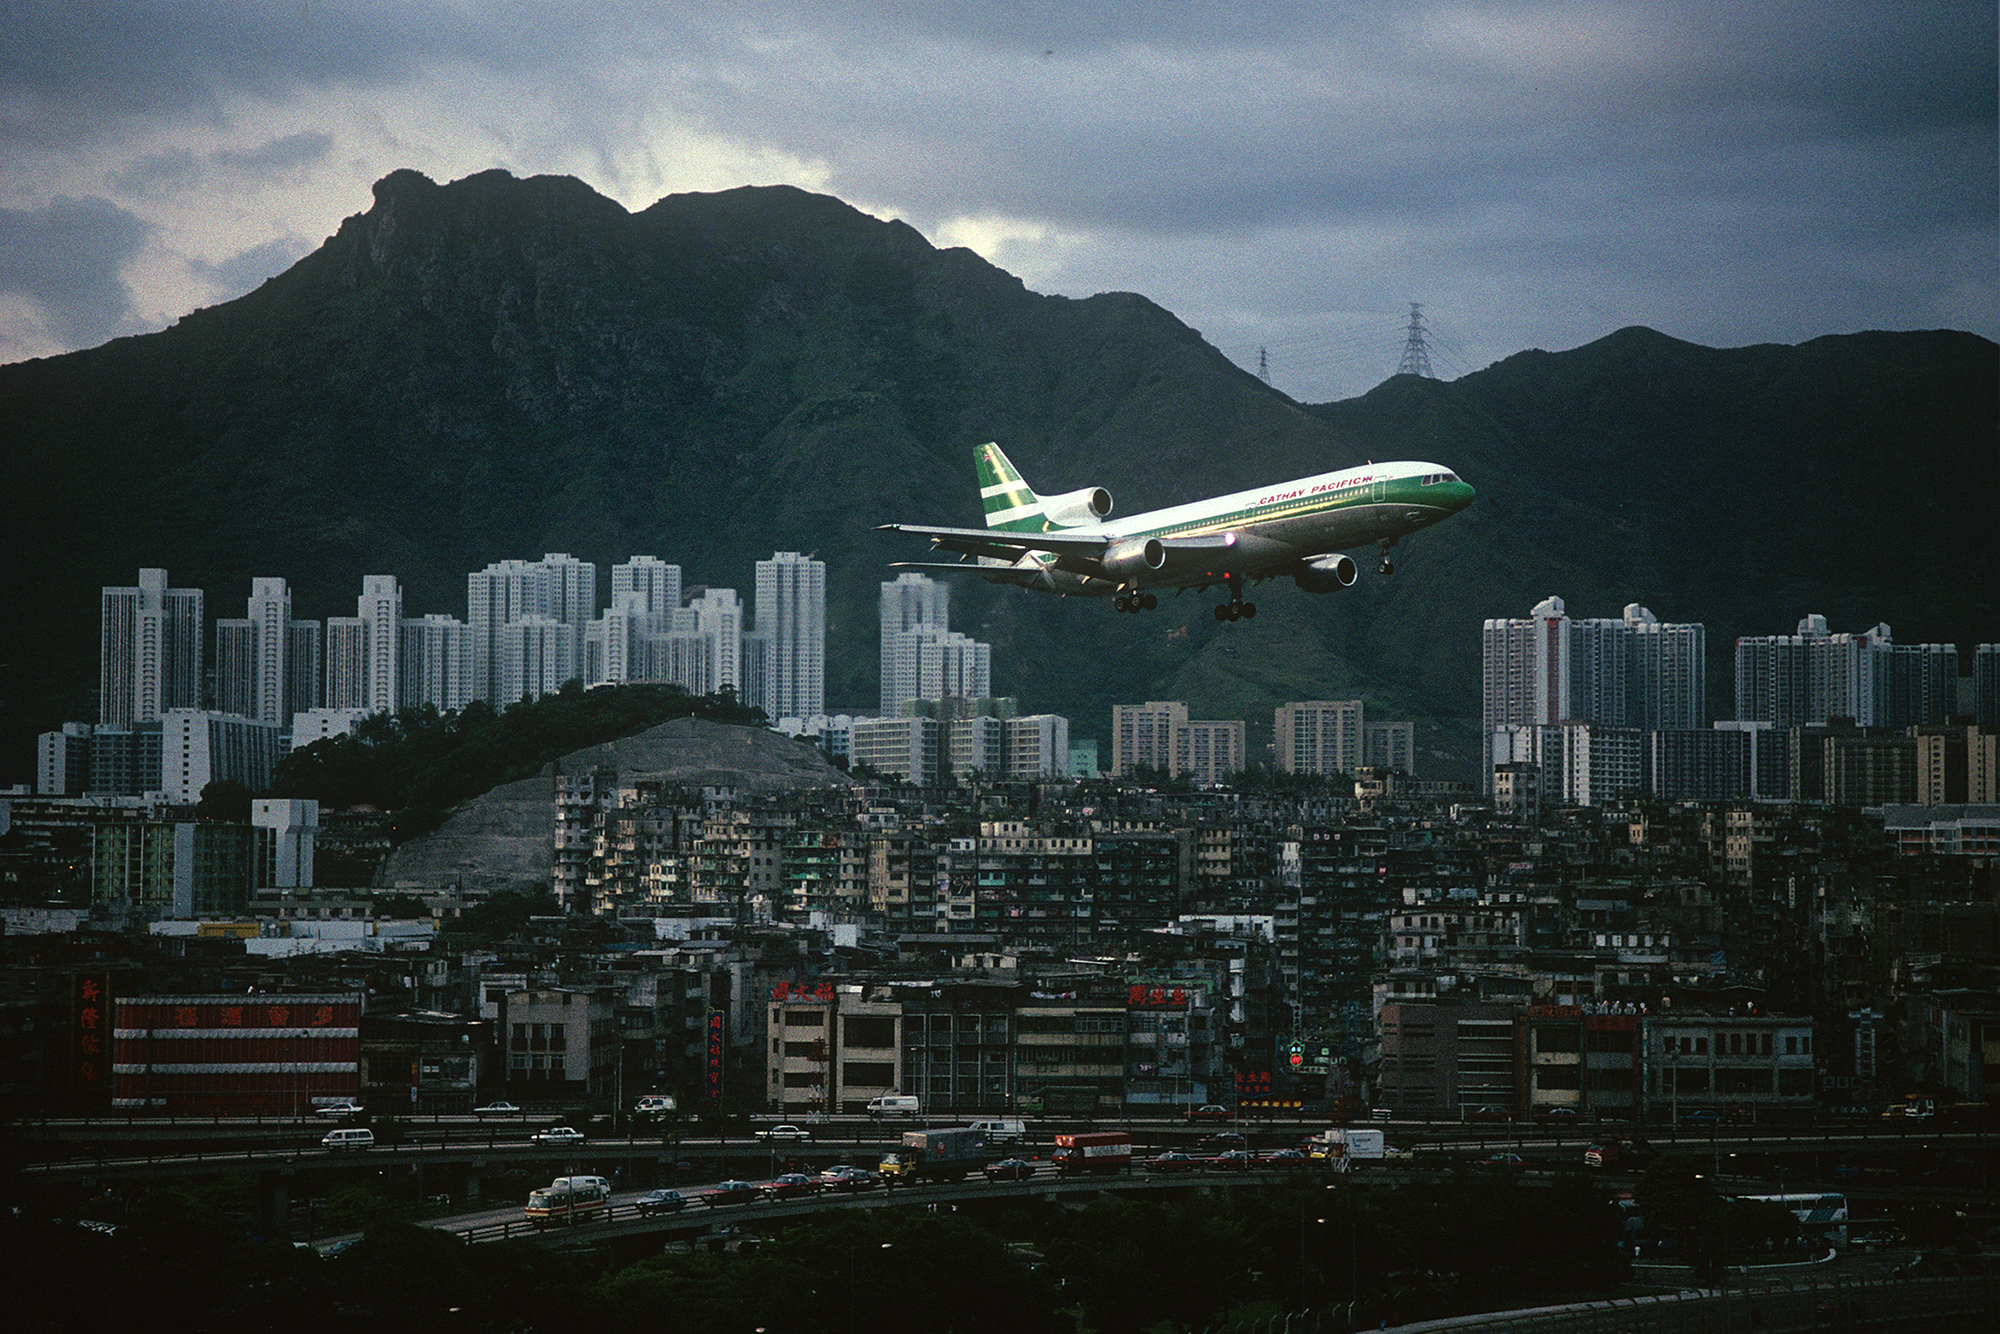 Cathay Pacific Tri-Star and Kowloon Walled City, 1989